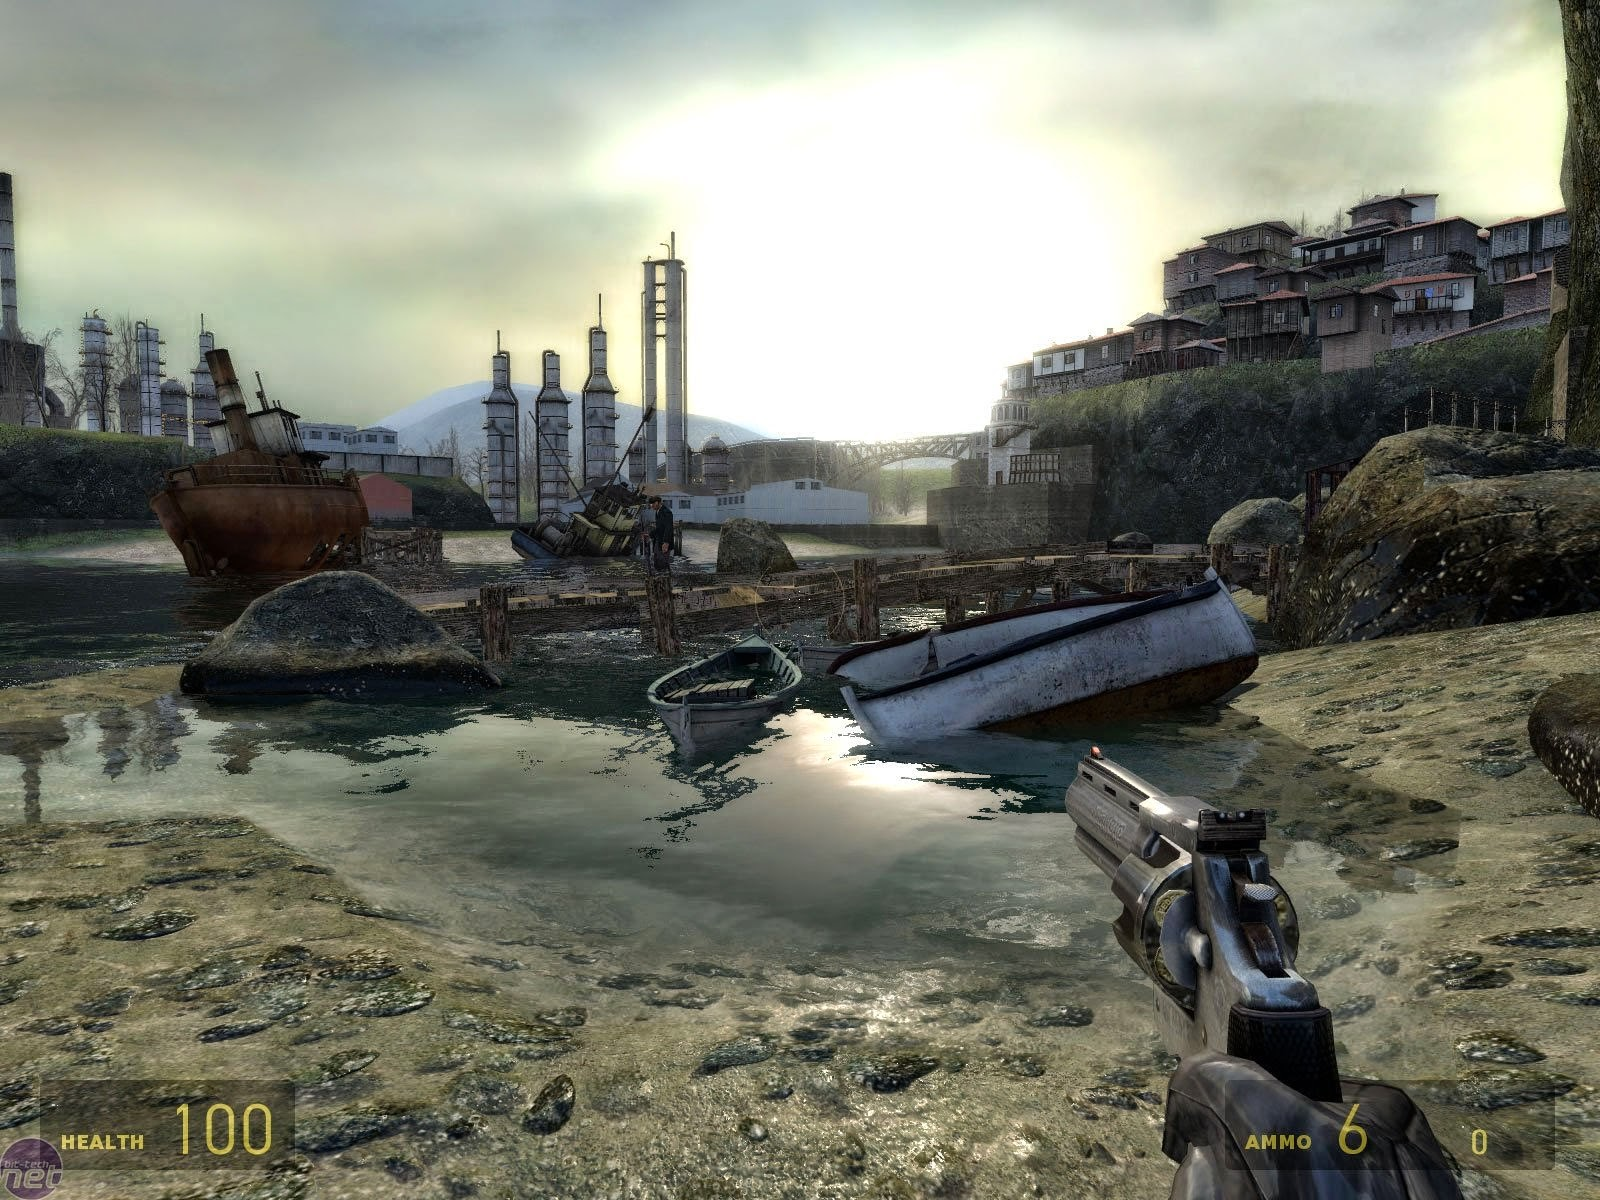 http://www.freesoftwarecrack.com/2014/06/half-life-2-android-game-apk-data-download.html